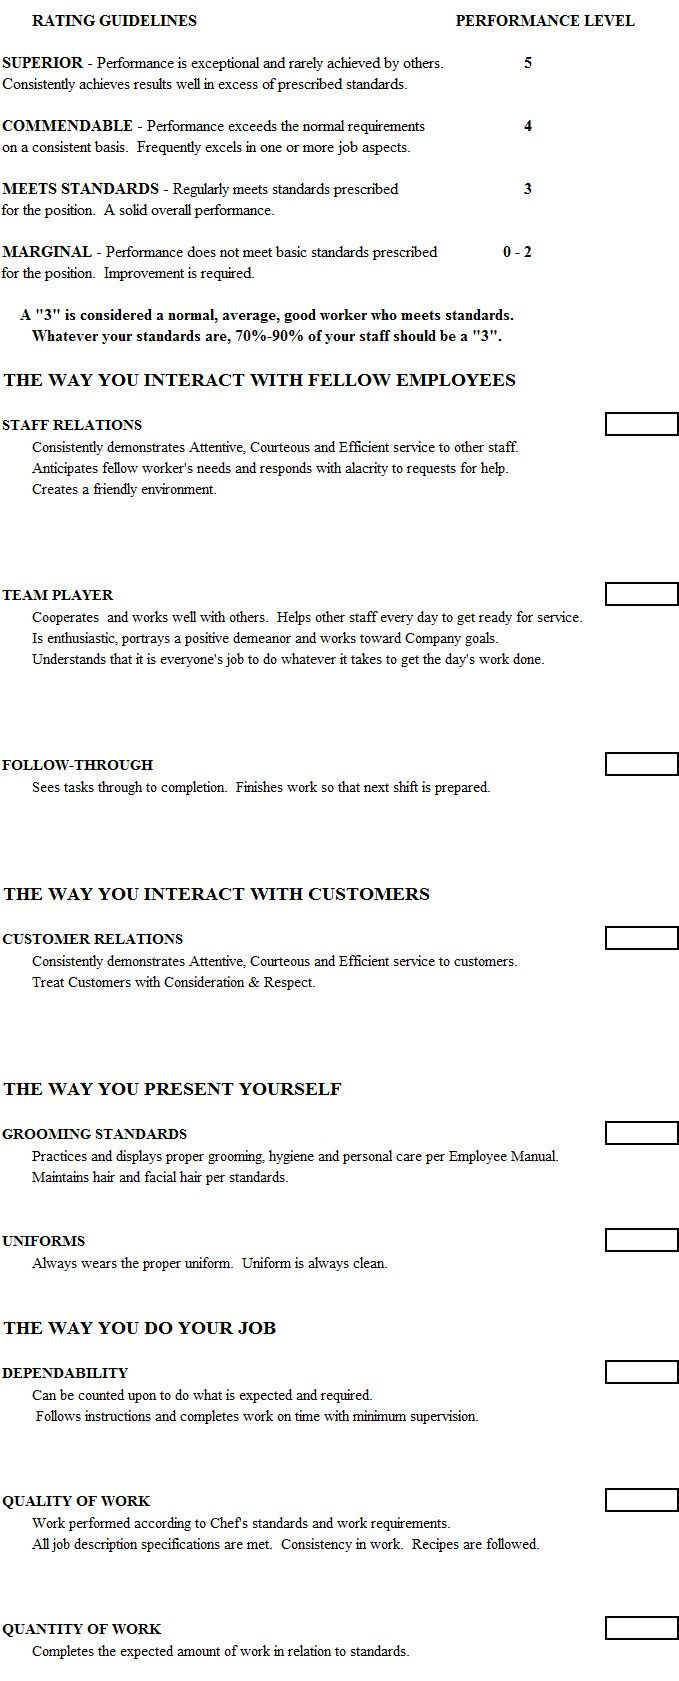 Job Performance Evaluation Form Templates Employee Evaluation Template For Restaurants Artisteer Web Design .